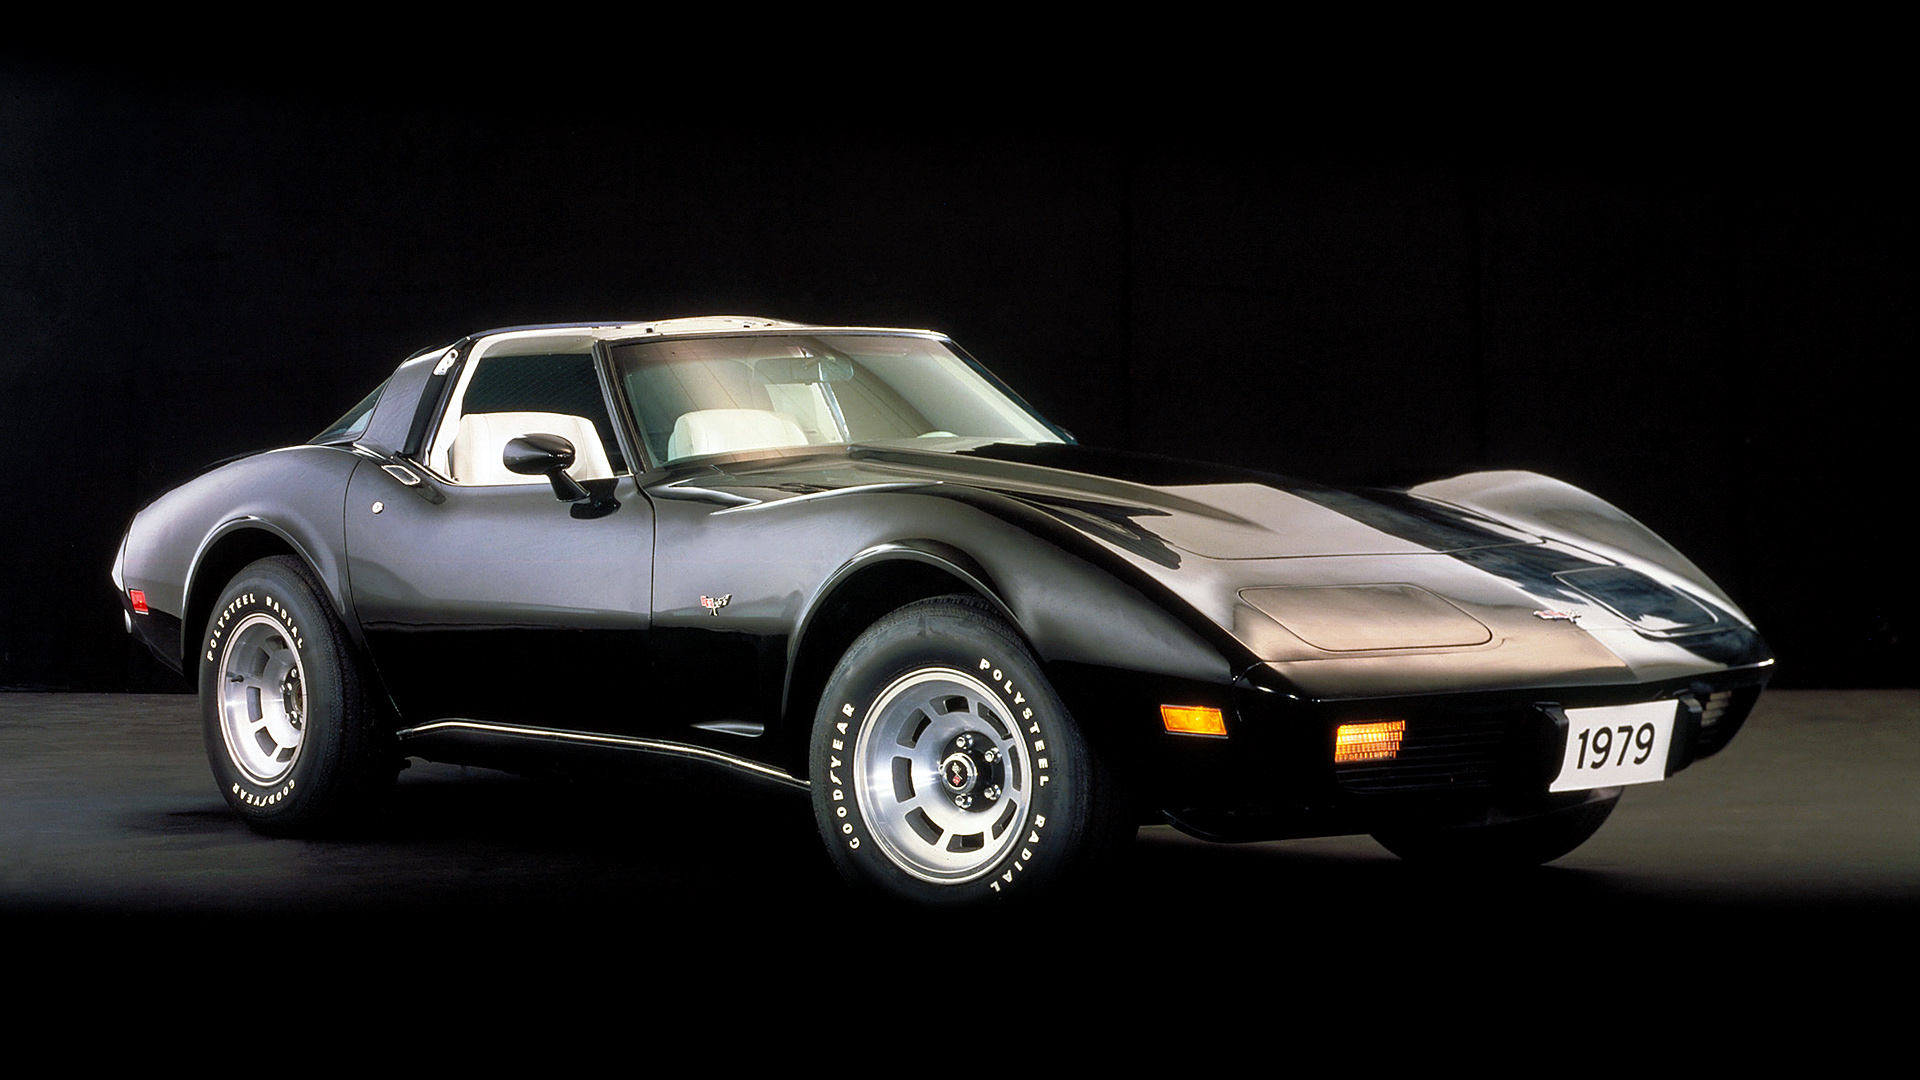 C3 Corvette Wallpaper Wallpapersafari